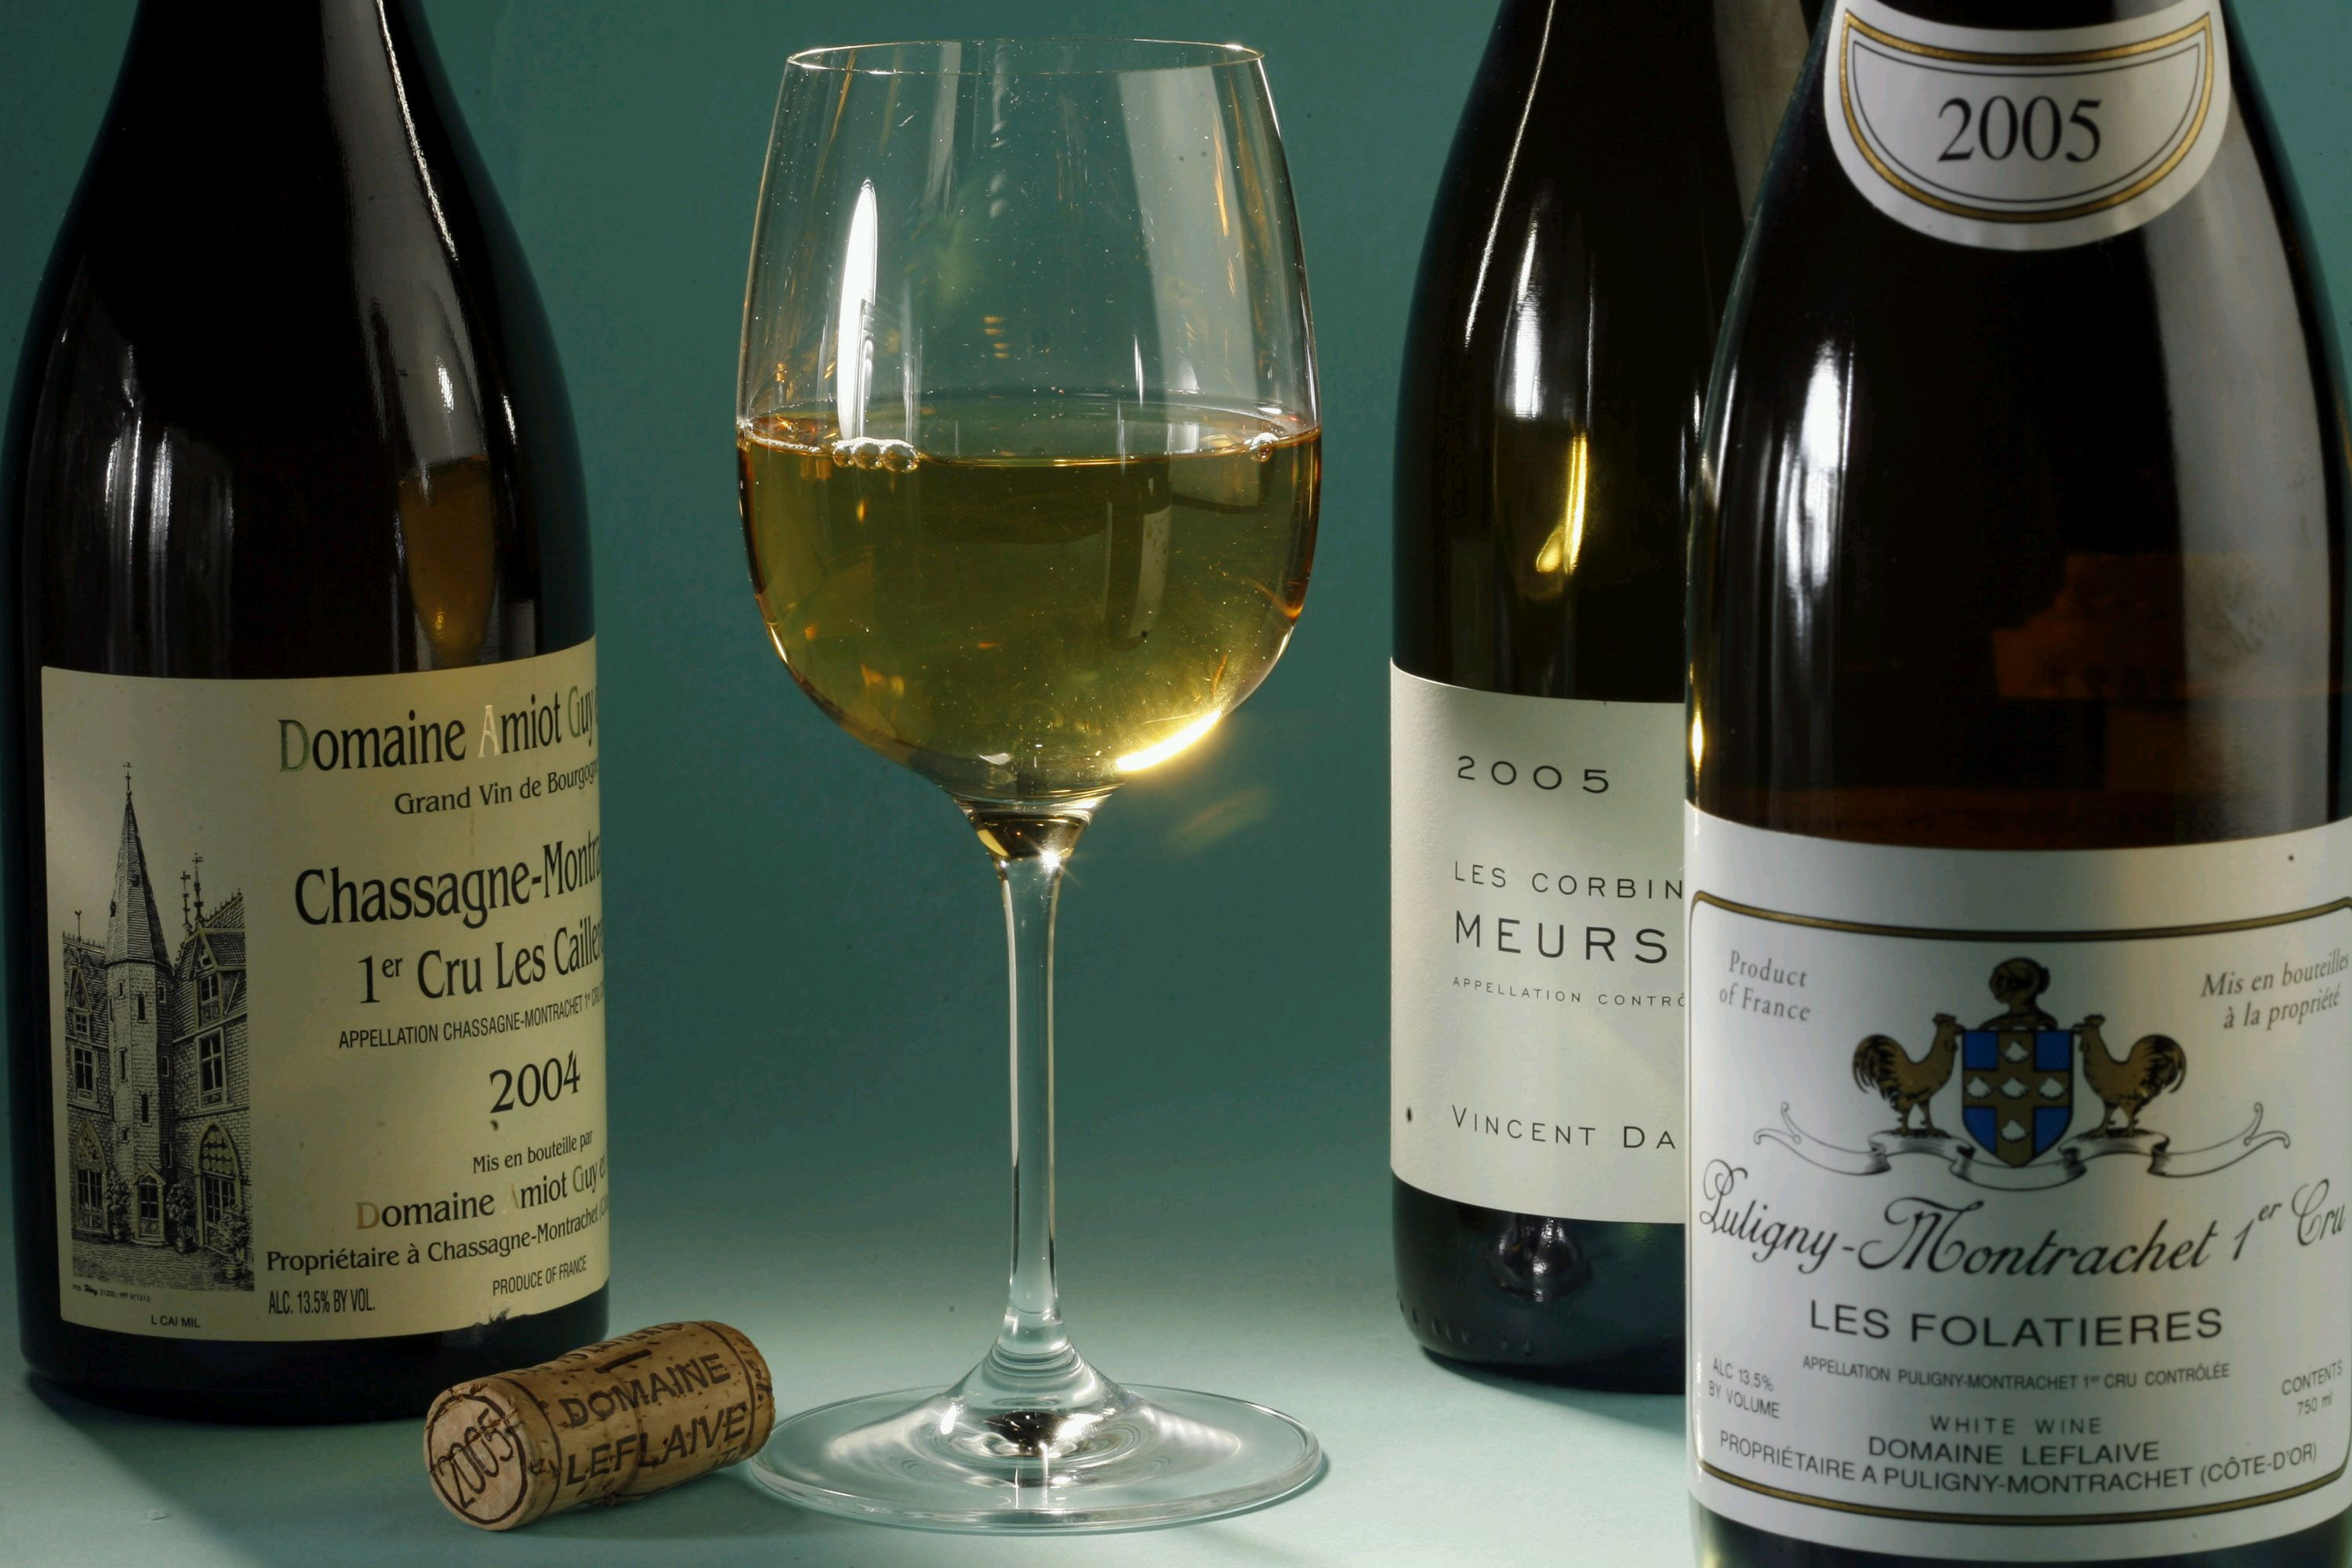 White wines that go well with holiday dinners include, from left, Domaine Amiot Chassagne-Montrachet, Meursault Les Corbins, and Puligny-Montrachet 1e...